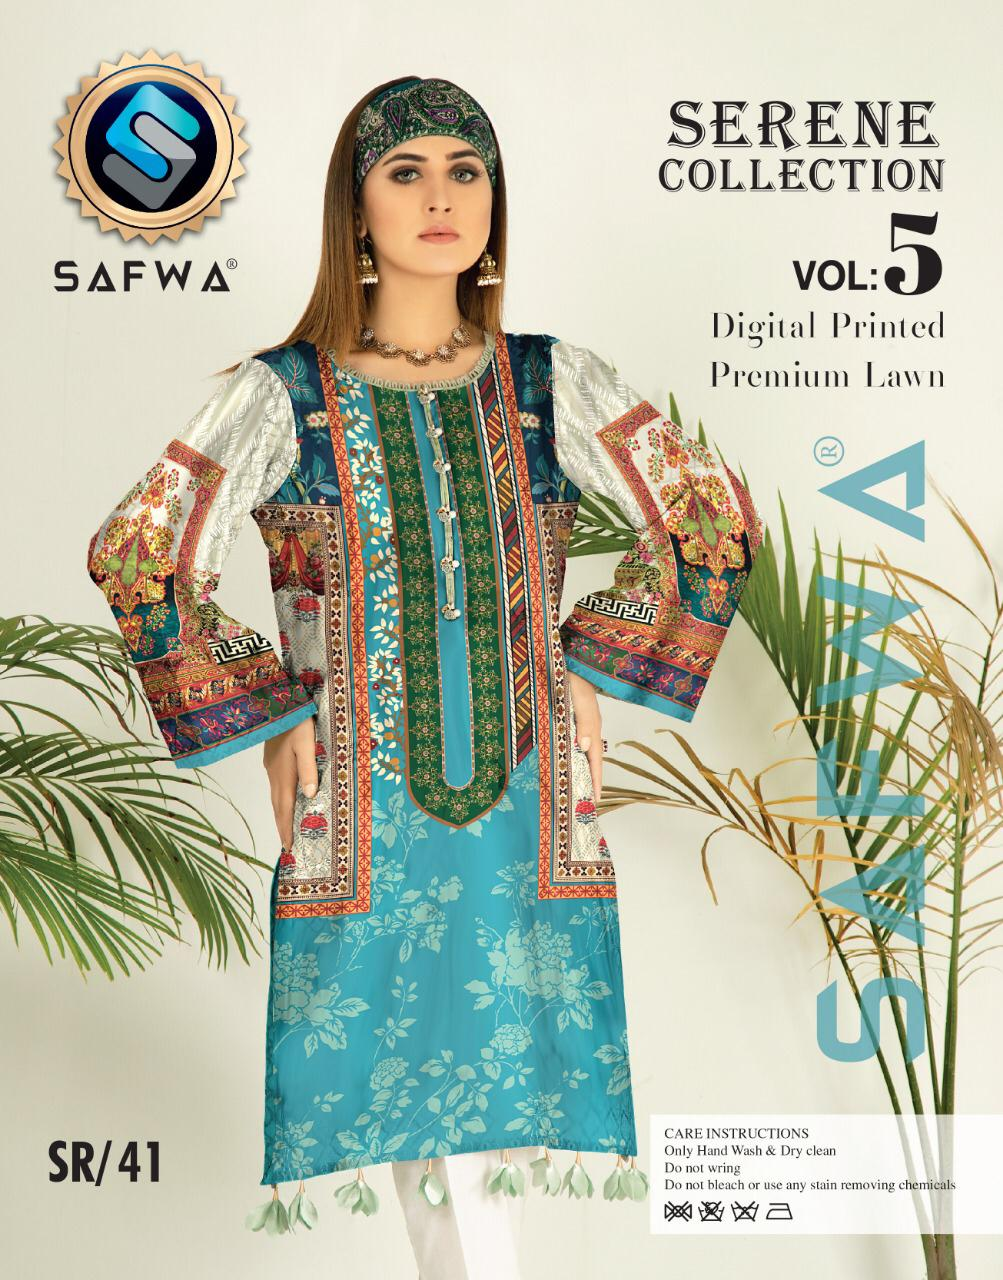 SP-41-SAFWA PREMIUM LAWN-SERENE PLUS COLLECTION-DIGITAL 2 PIECE - Safwa-Pakistani Dresses-Dresses-Kurti-Shop Online